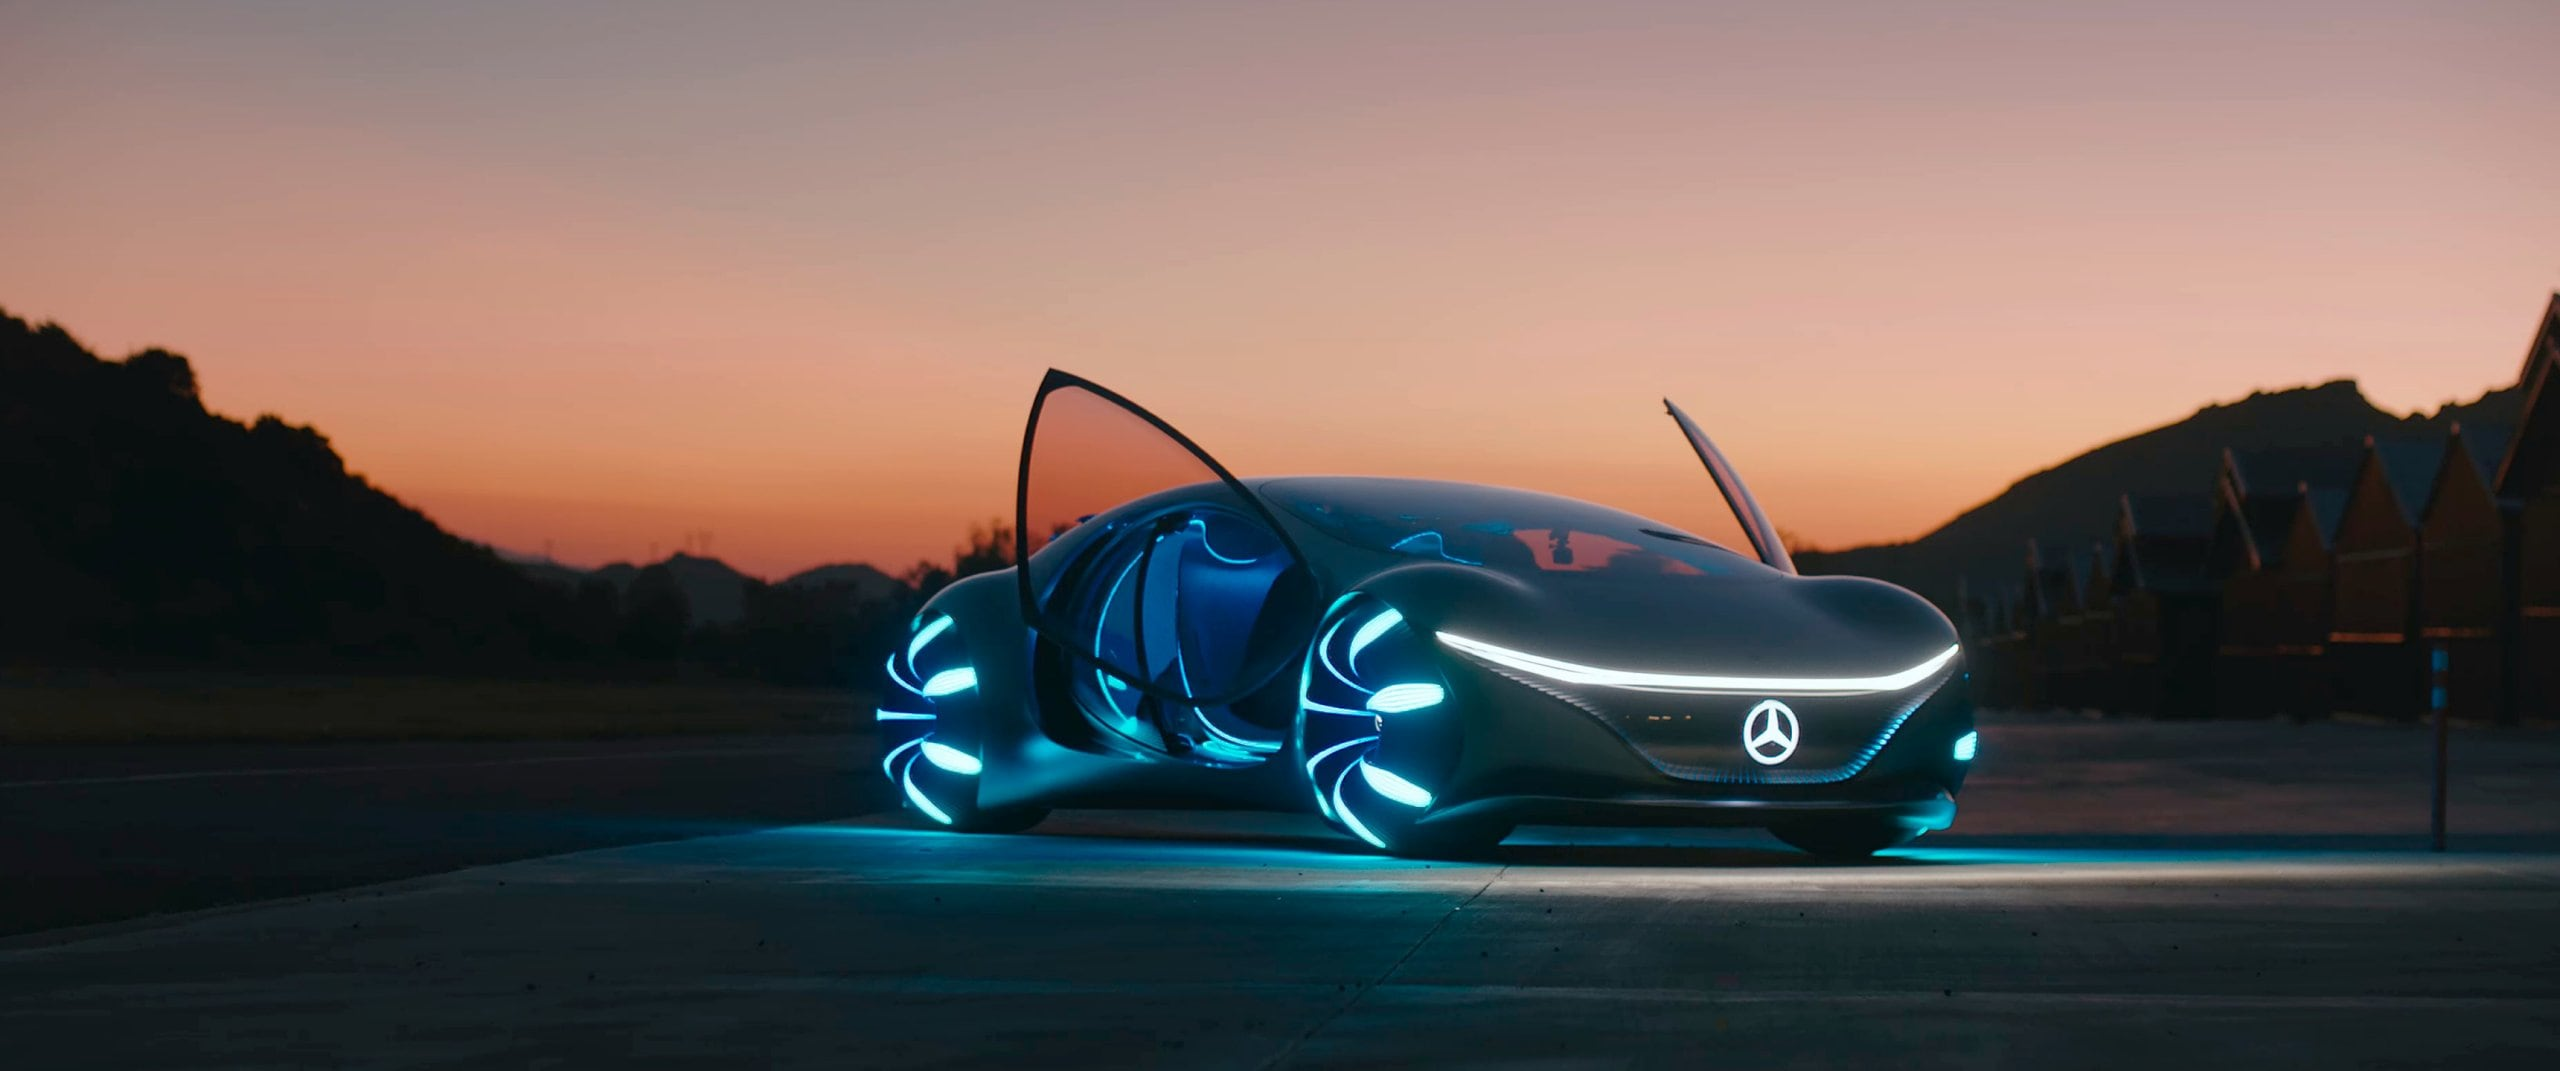 The Mercedes-Benz VISION AVTR standing on a runway at sunset.